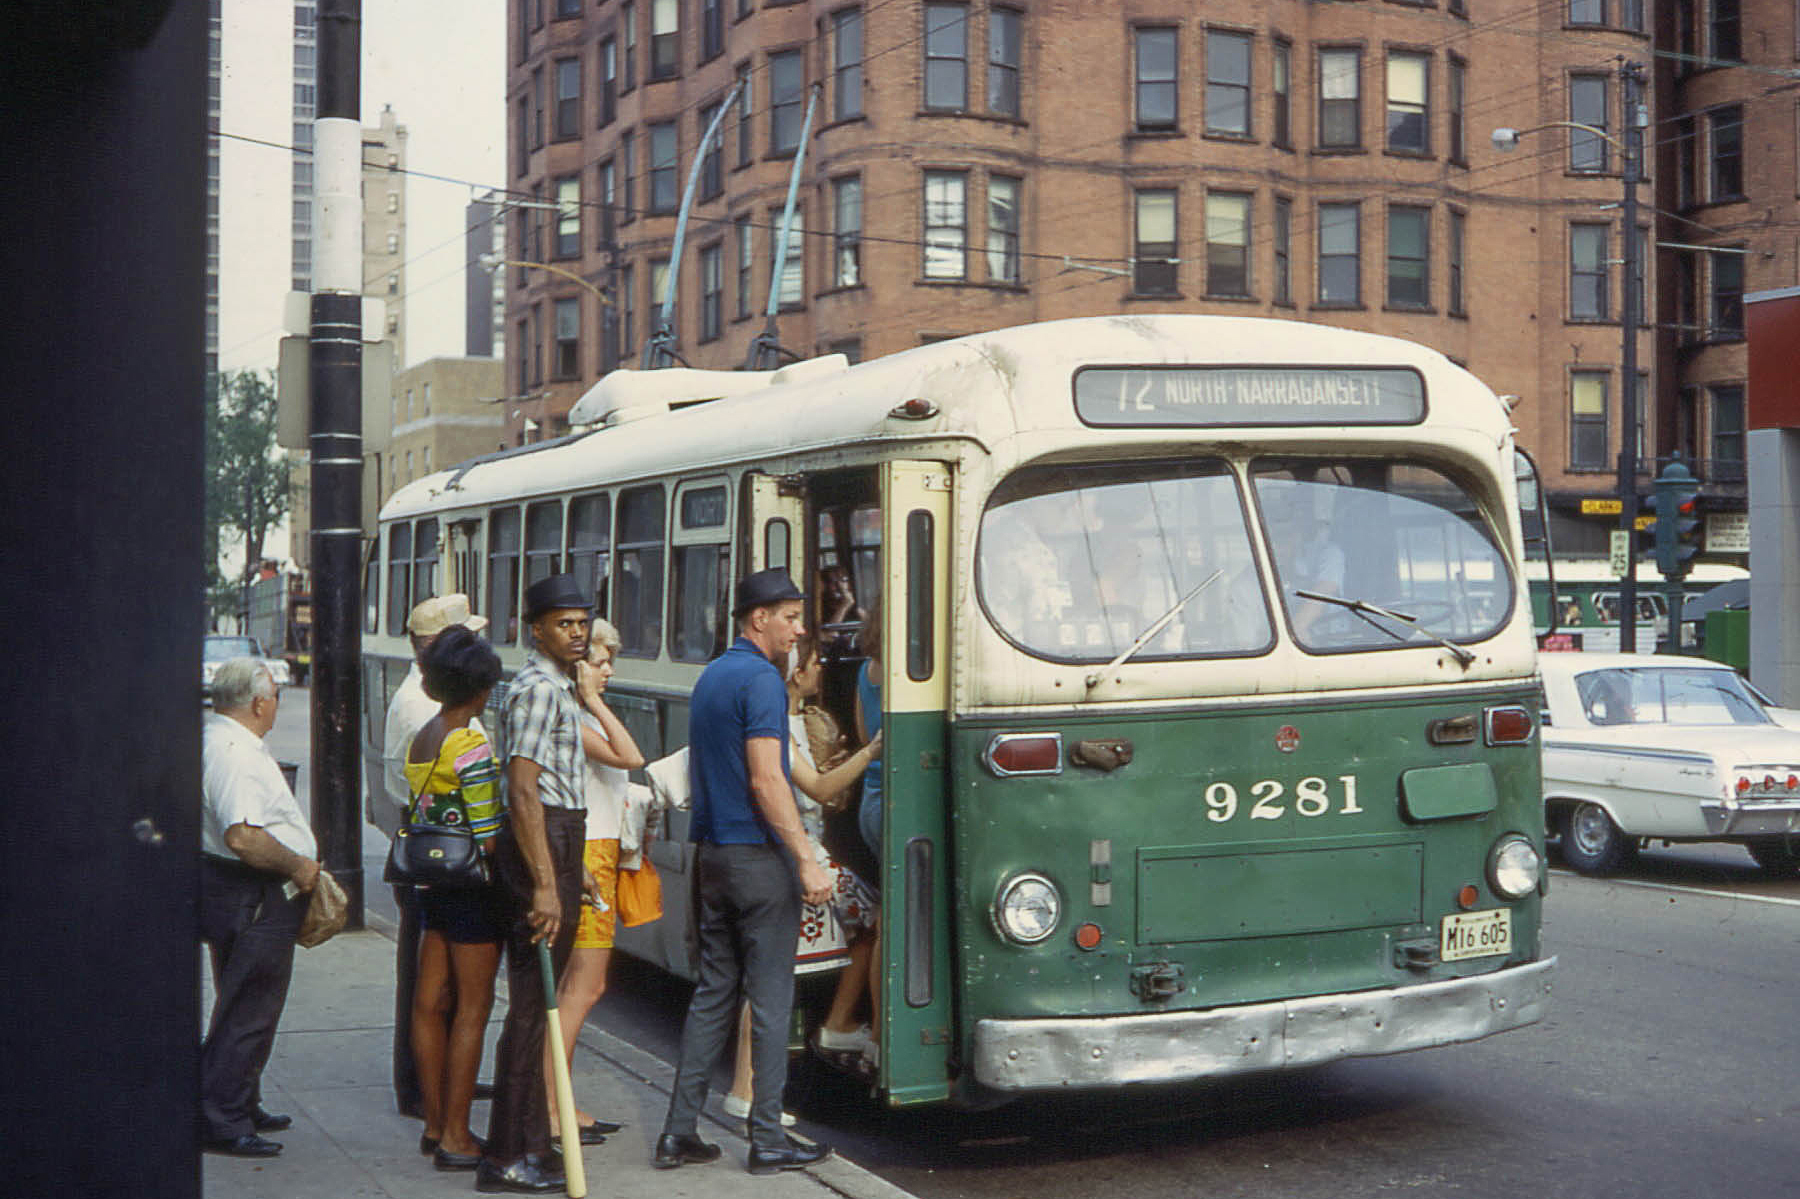 Historic photos of Chicago trains and buses